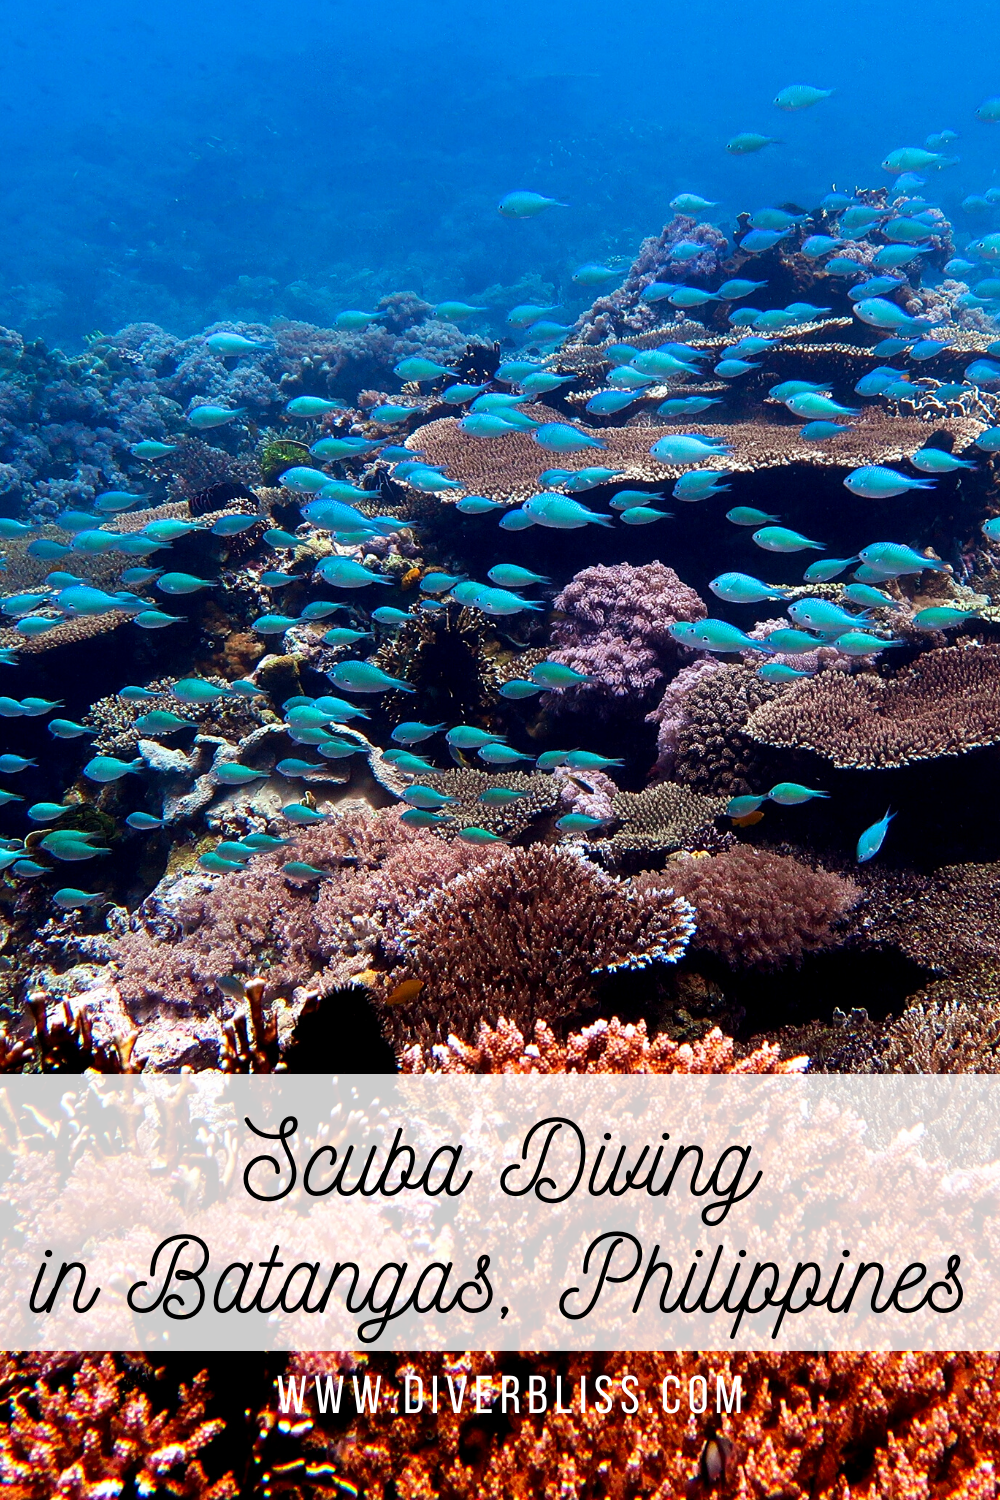 Scuba Diving Experience In Anilao Batangas Philippines Diver Bliss In 2020 Philippines Travel Guide Philippines Travel Scuba Diving